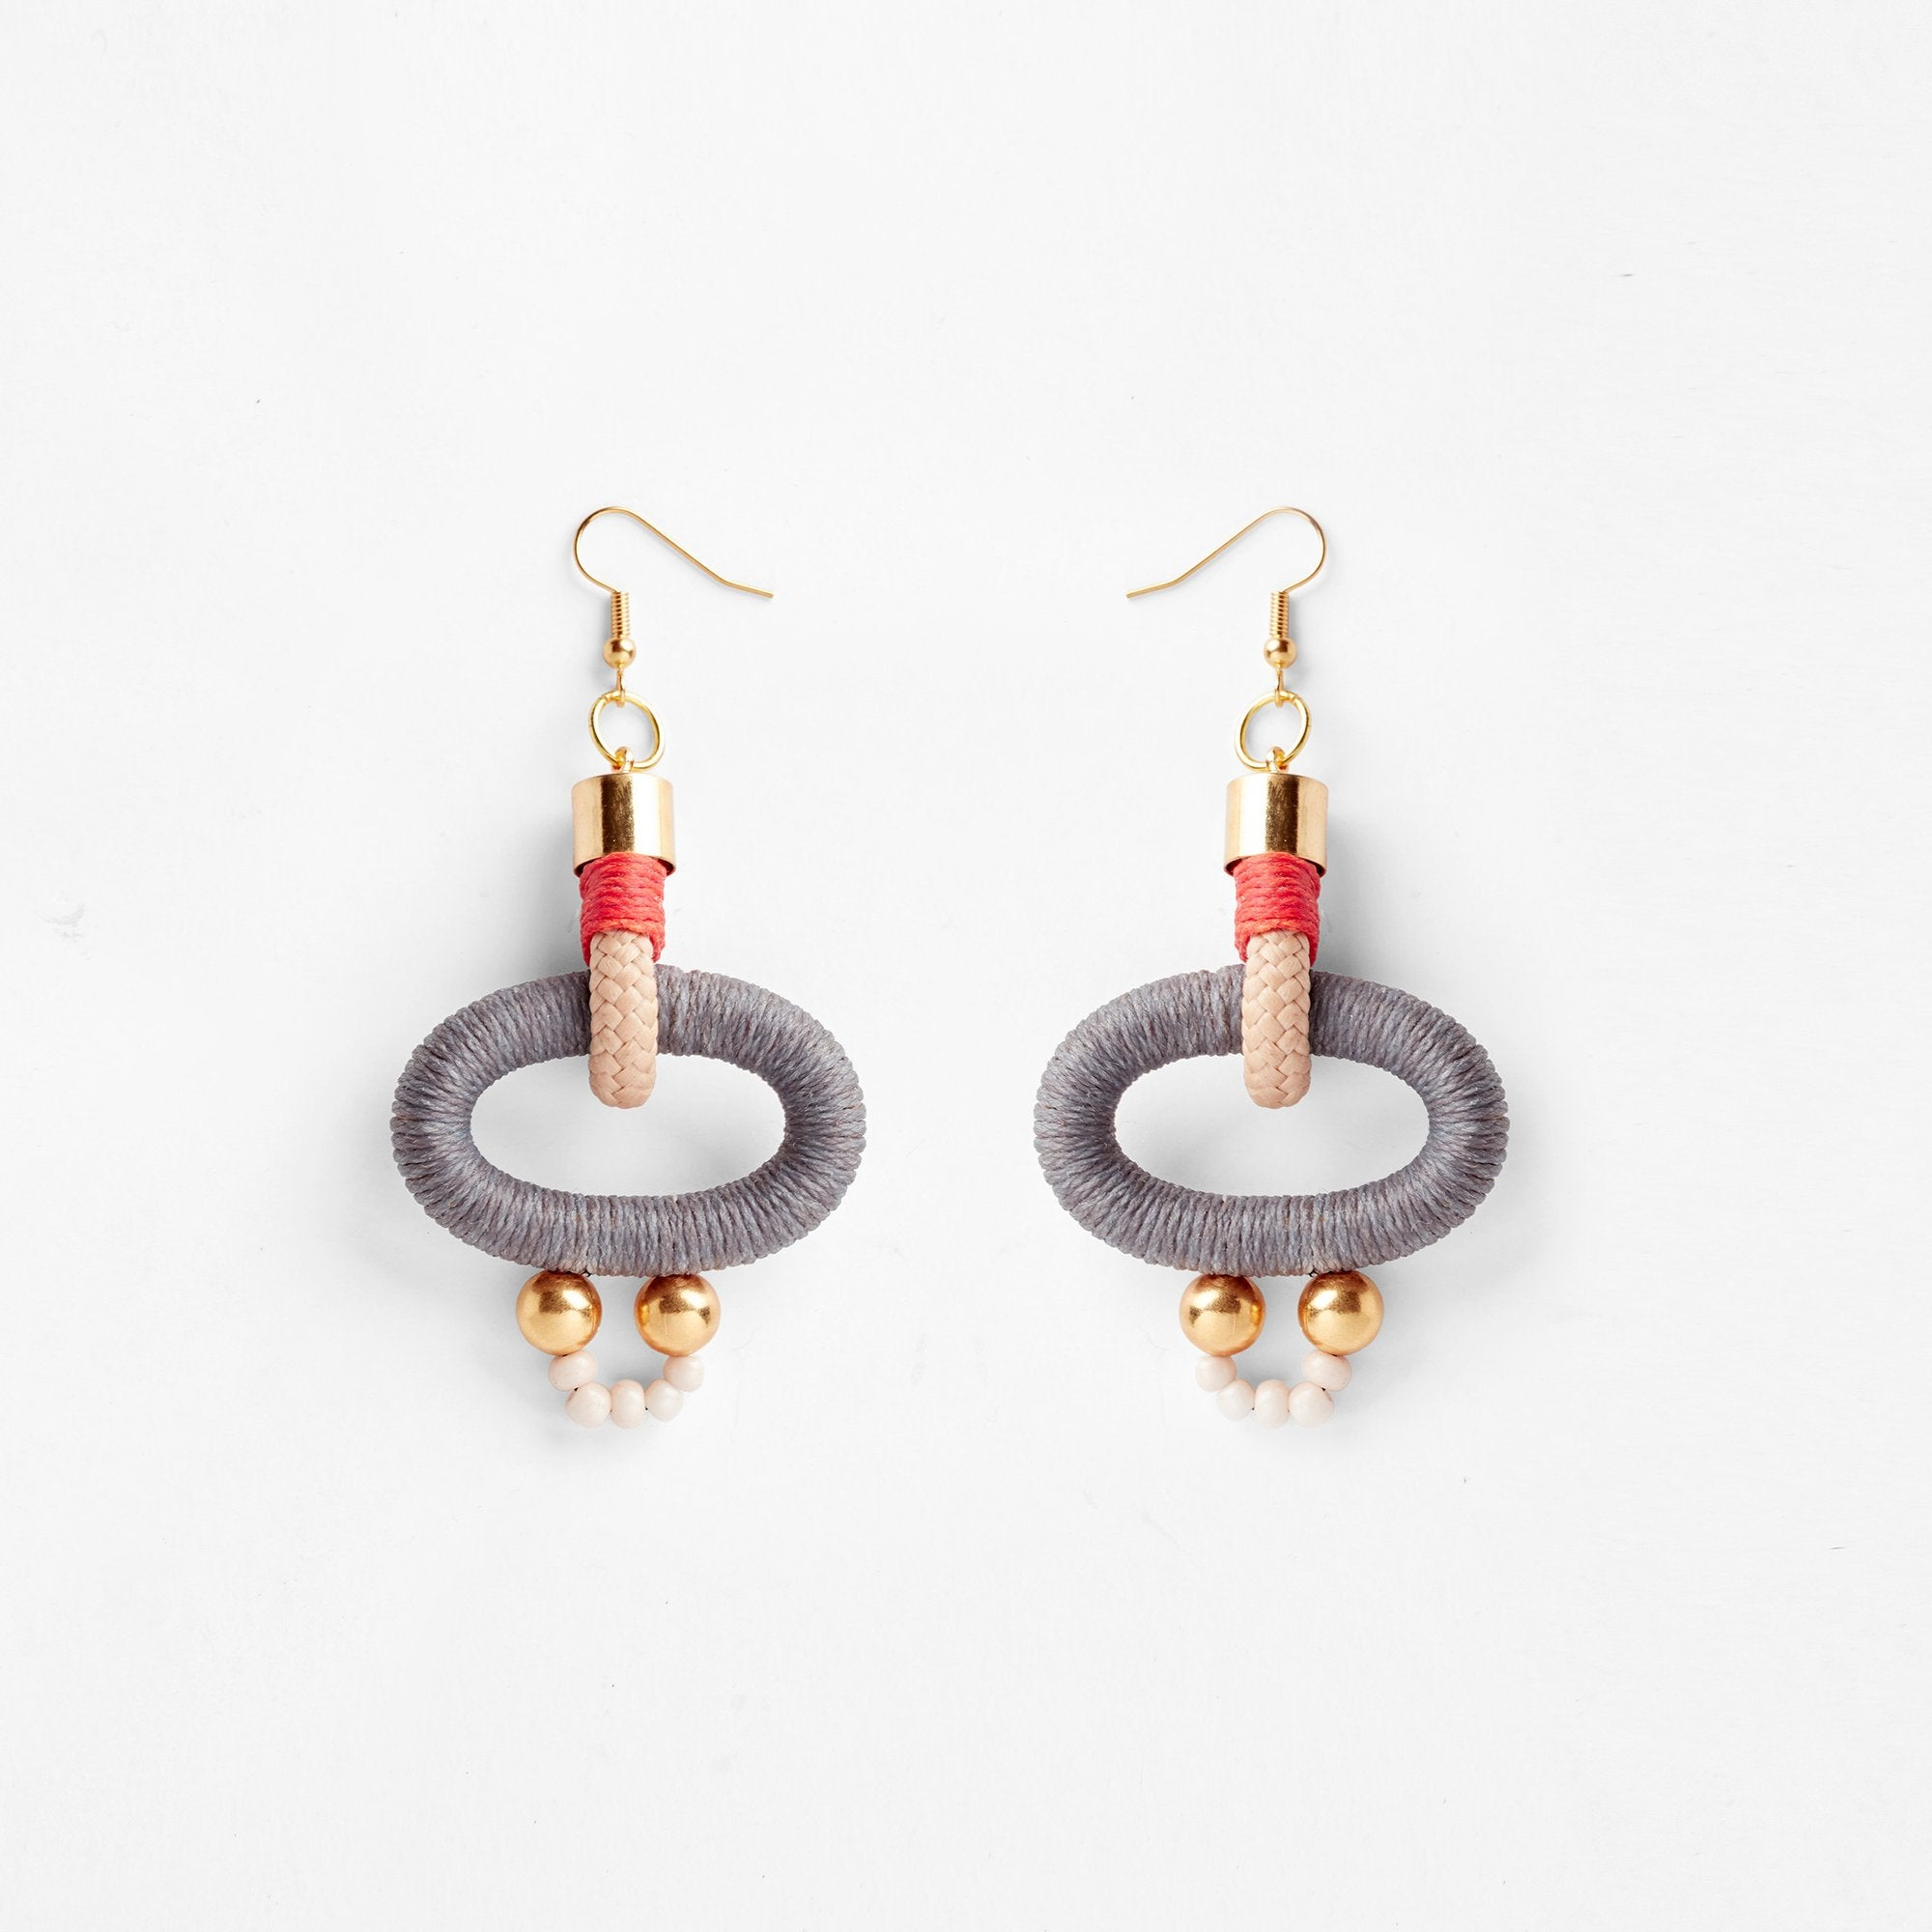 Gamma Grey Orange Earrings by Pichulik